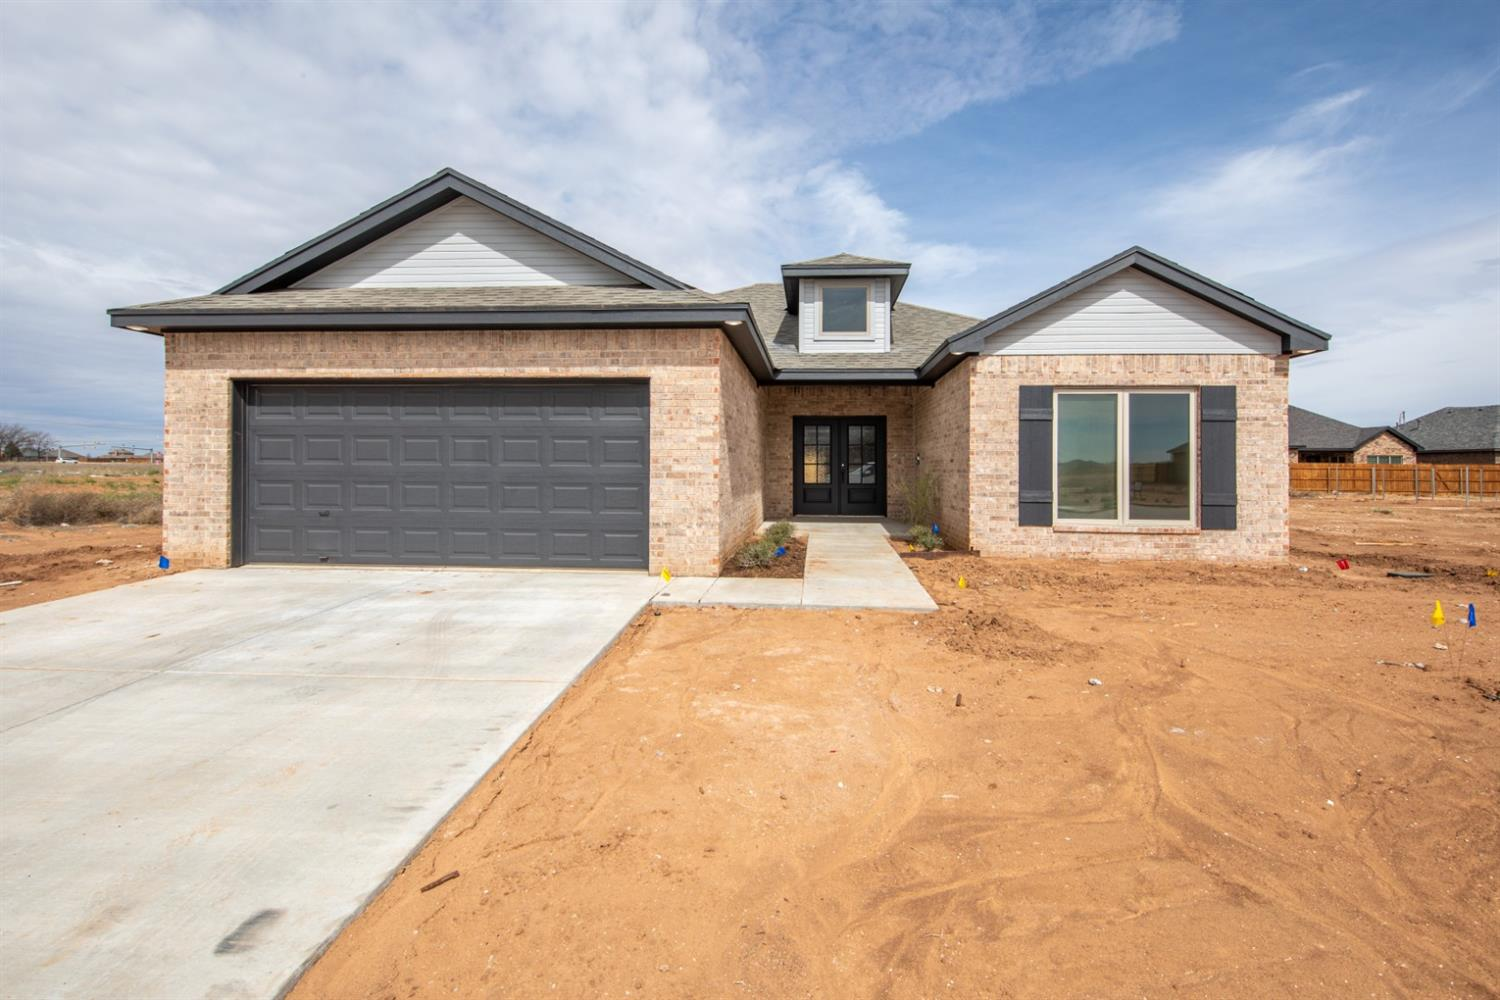 Brand New Construction located in Lubbock-Cooper ISD! Walking into the large double front doors you will be welcomed with luxury wood tile leading you to the spacious living room featuring tall 10' ceilings, beautiful fireplace and tons of natural light. The chefs kitchen is open to the living area great for entertaining, featuring stainless steel appliances, granite counter tops, large walk in pantry, custom built cabinets and tons of storage space.  The Isolated master suite has a tall vaulted ceiling, double sinks, separate shower and tub, 2 large walk in closets! Guest bedrooms have large walk in closets and double sinks in the bathroom. Spray foam insulation and 16 seer AC Unit makes for an energy efficient home!  Outside you will find sprinkler, grass, cedar fence and flower beds with one tree. This home won't last long!